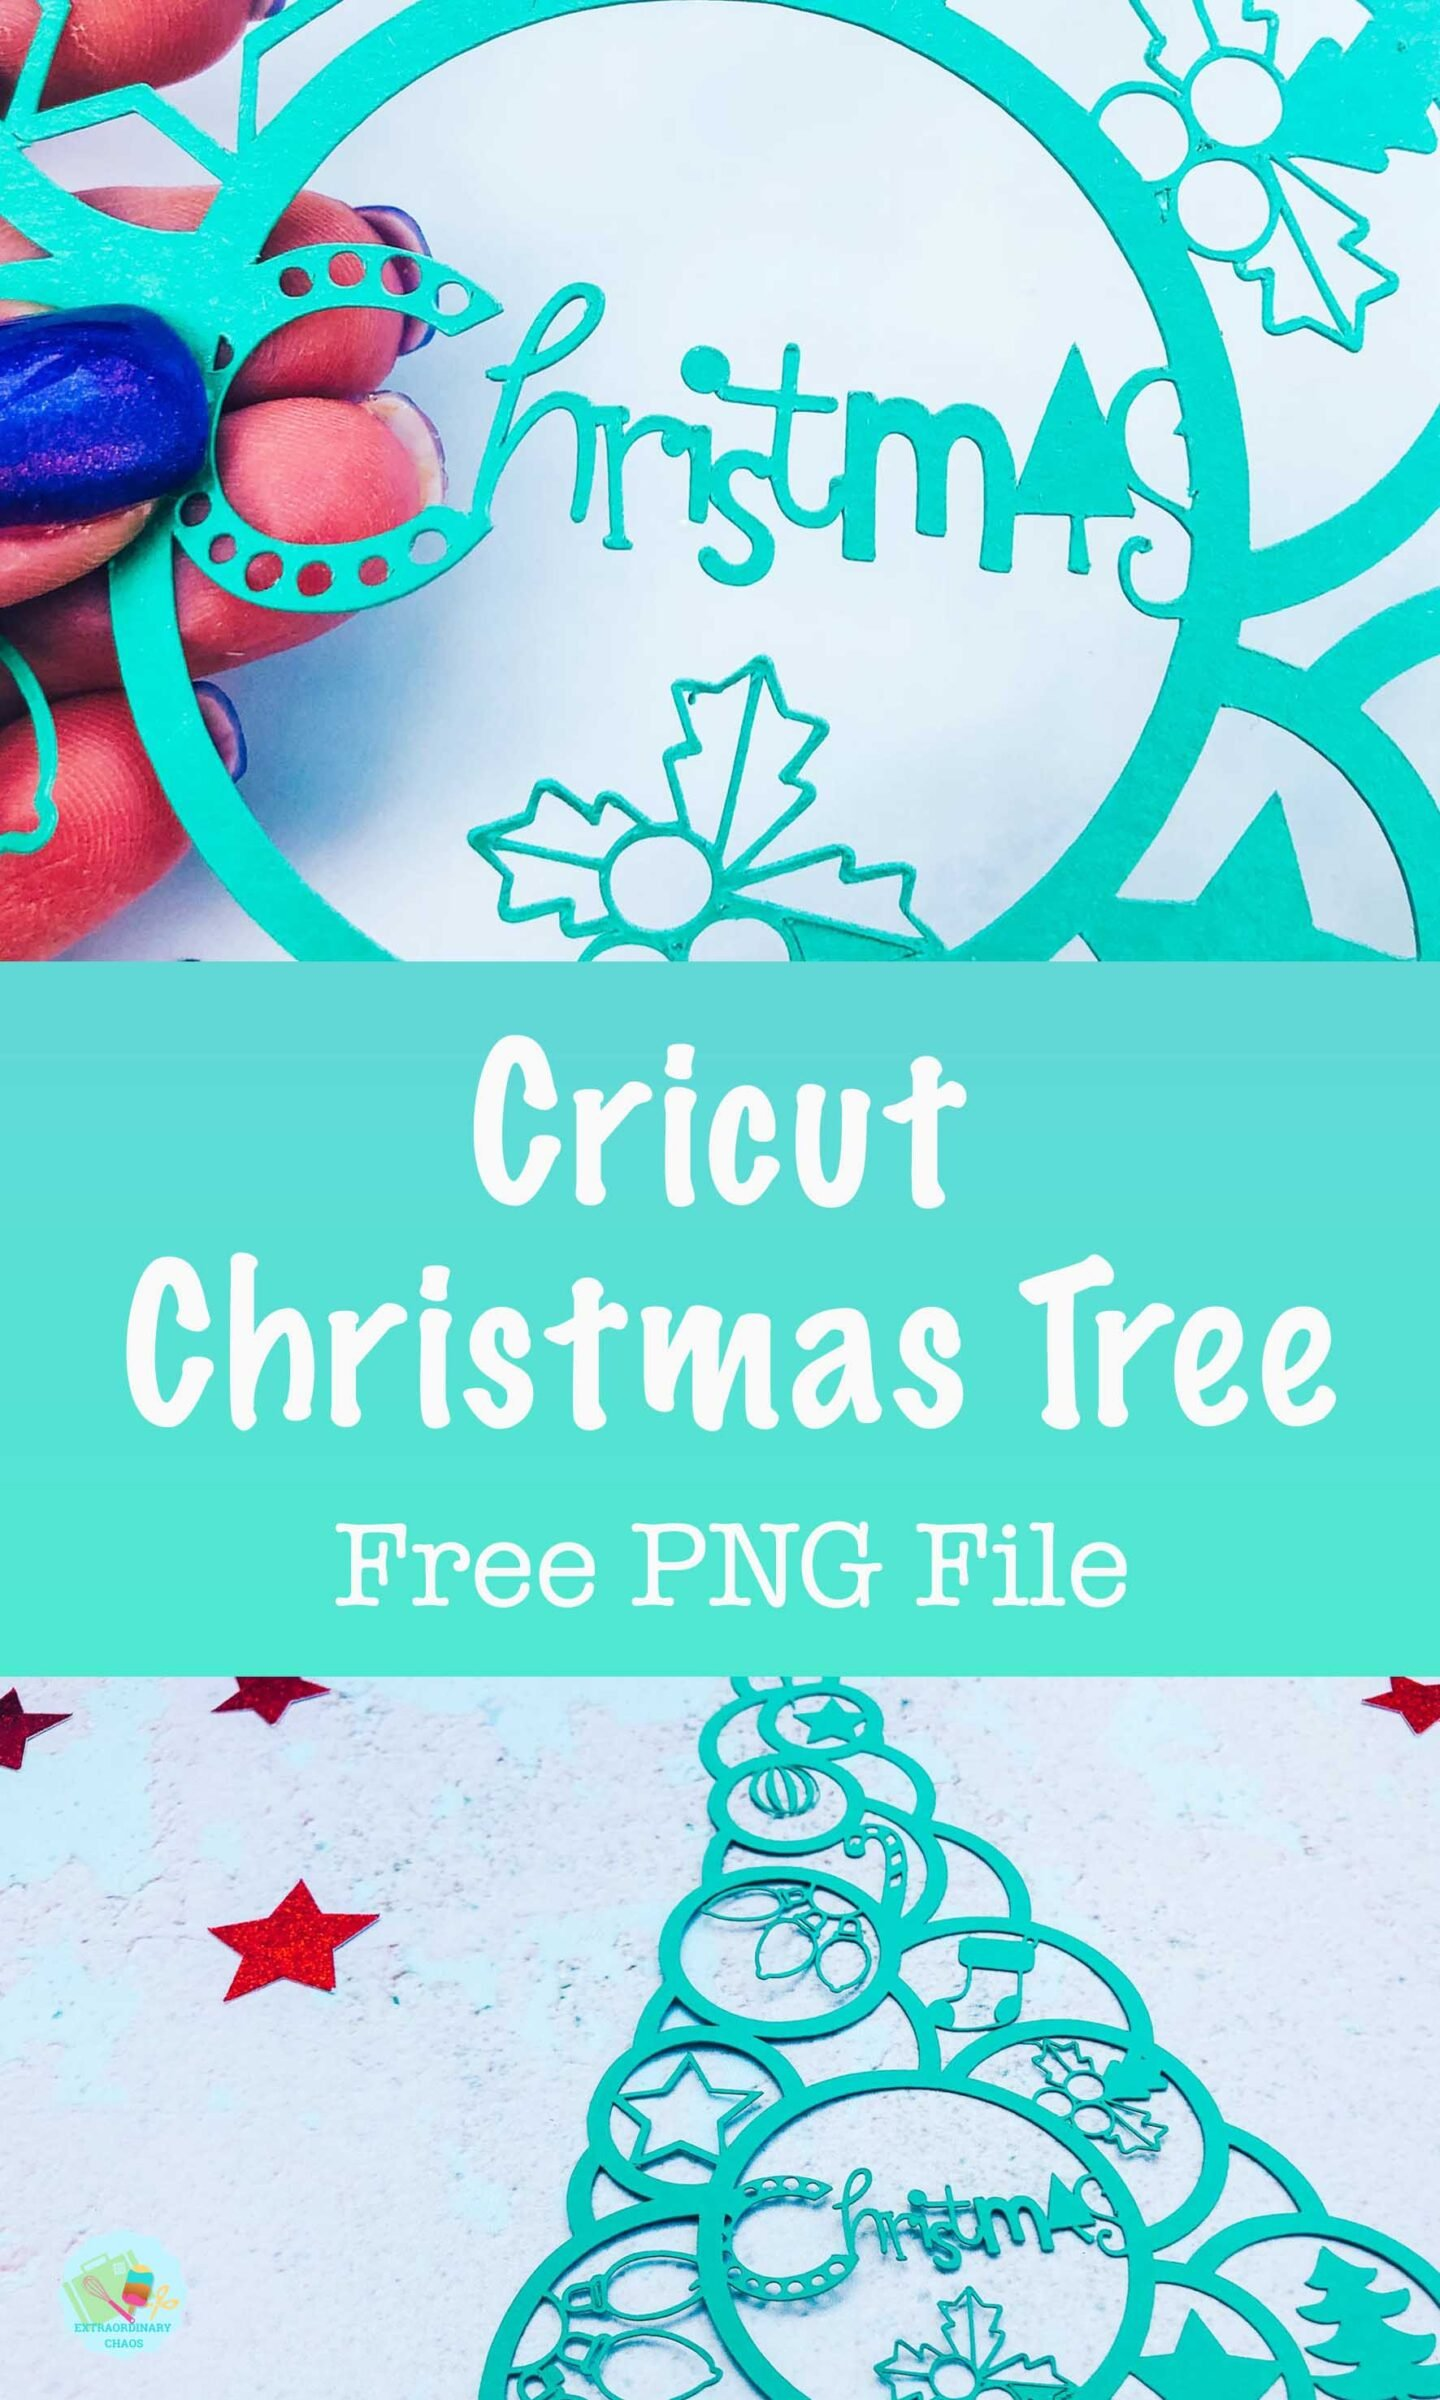 Christmas Tree Cricut PNG File for Mutliple Christmas Craft projects